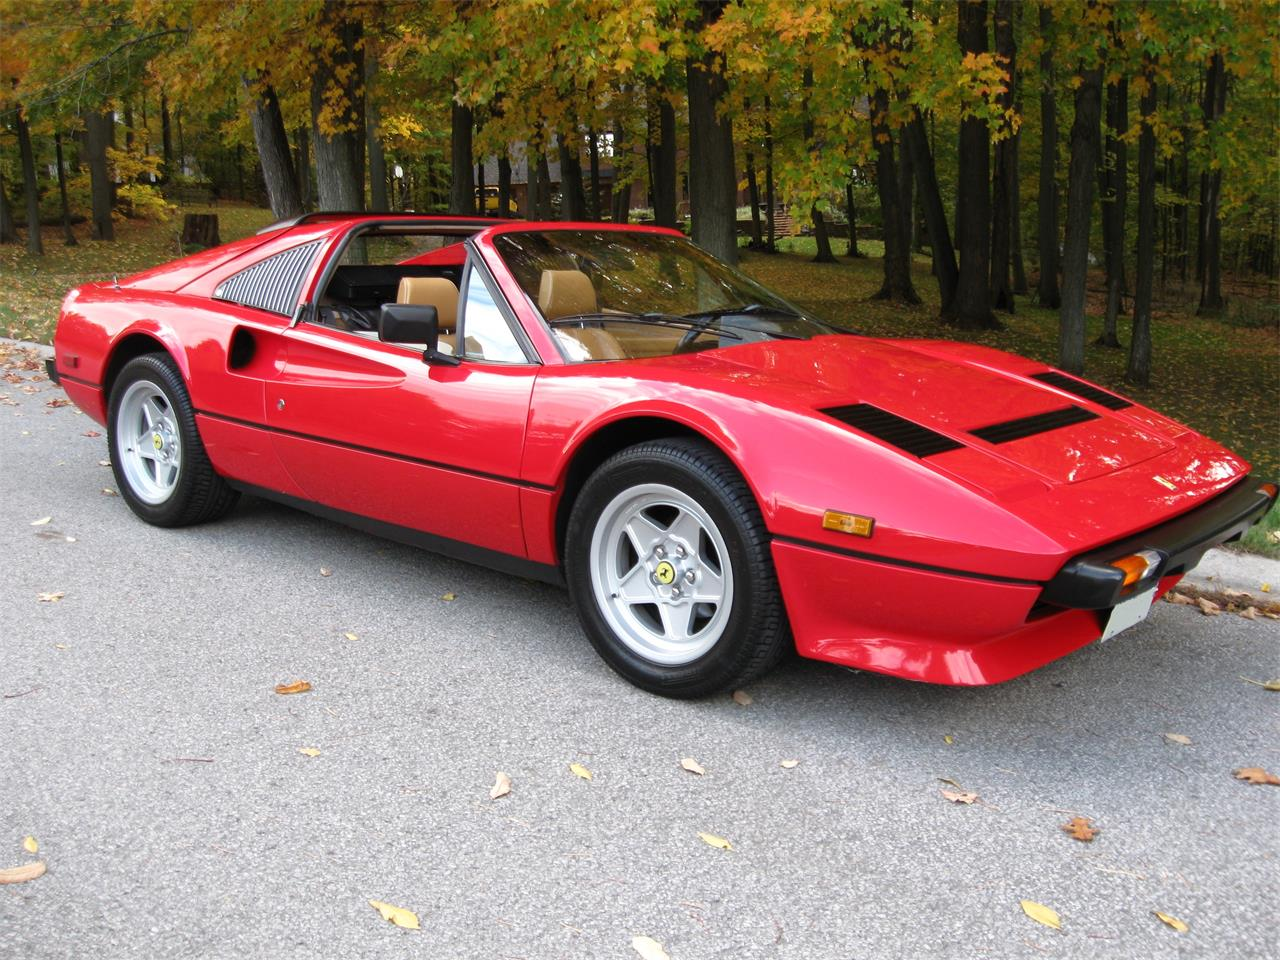 Car Dealers Toronto >> 1985 Ferrari 308 GTS quattrovalvole for Sale | ClassicCars ...